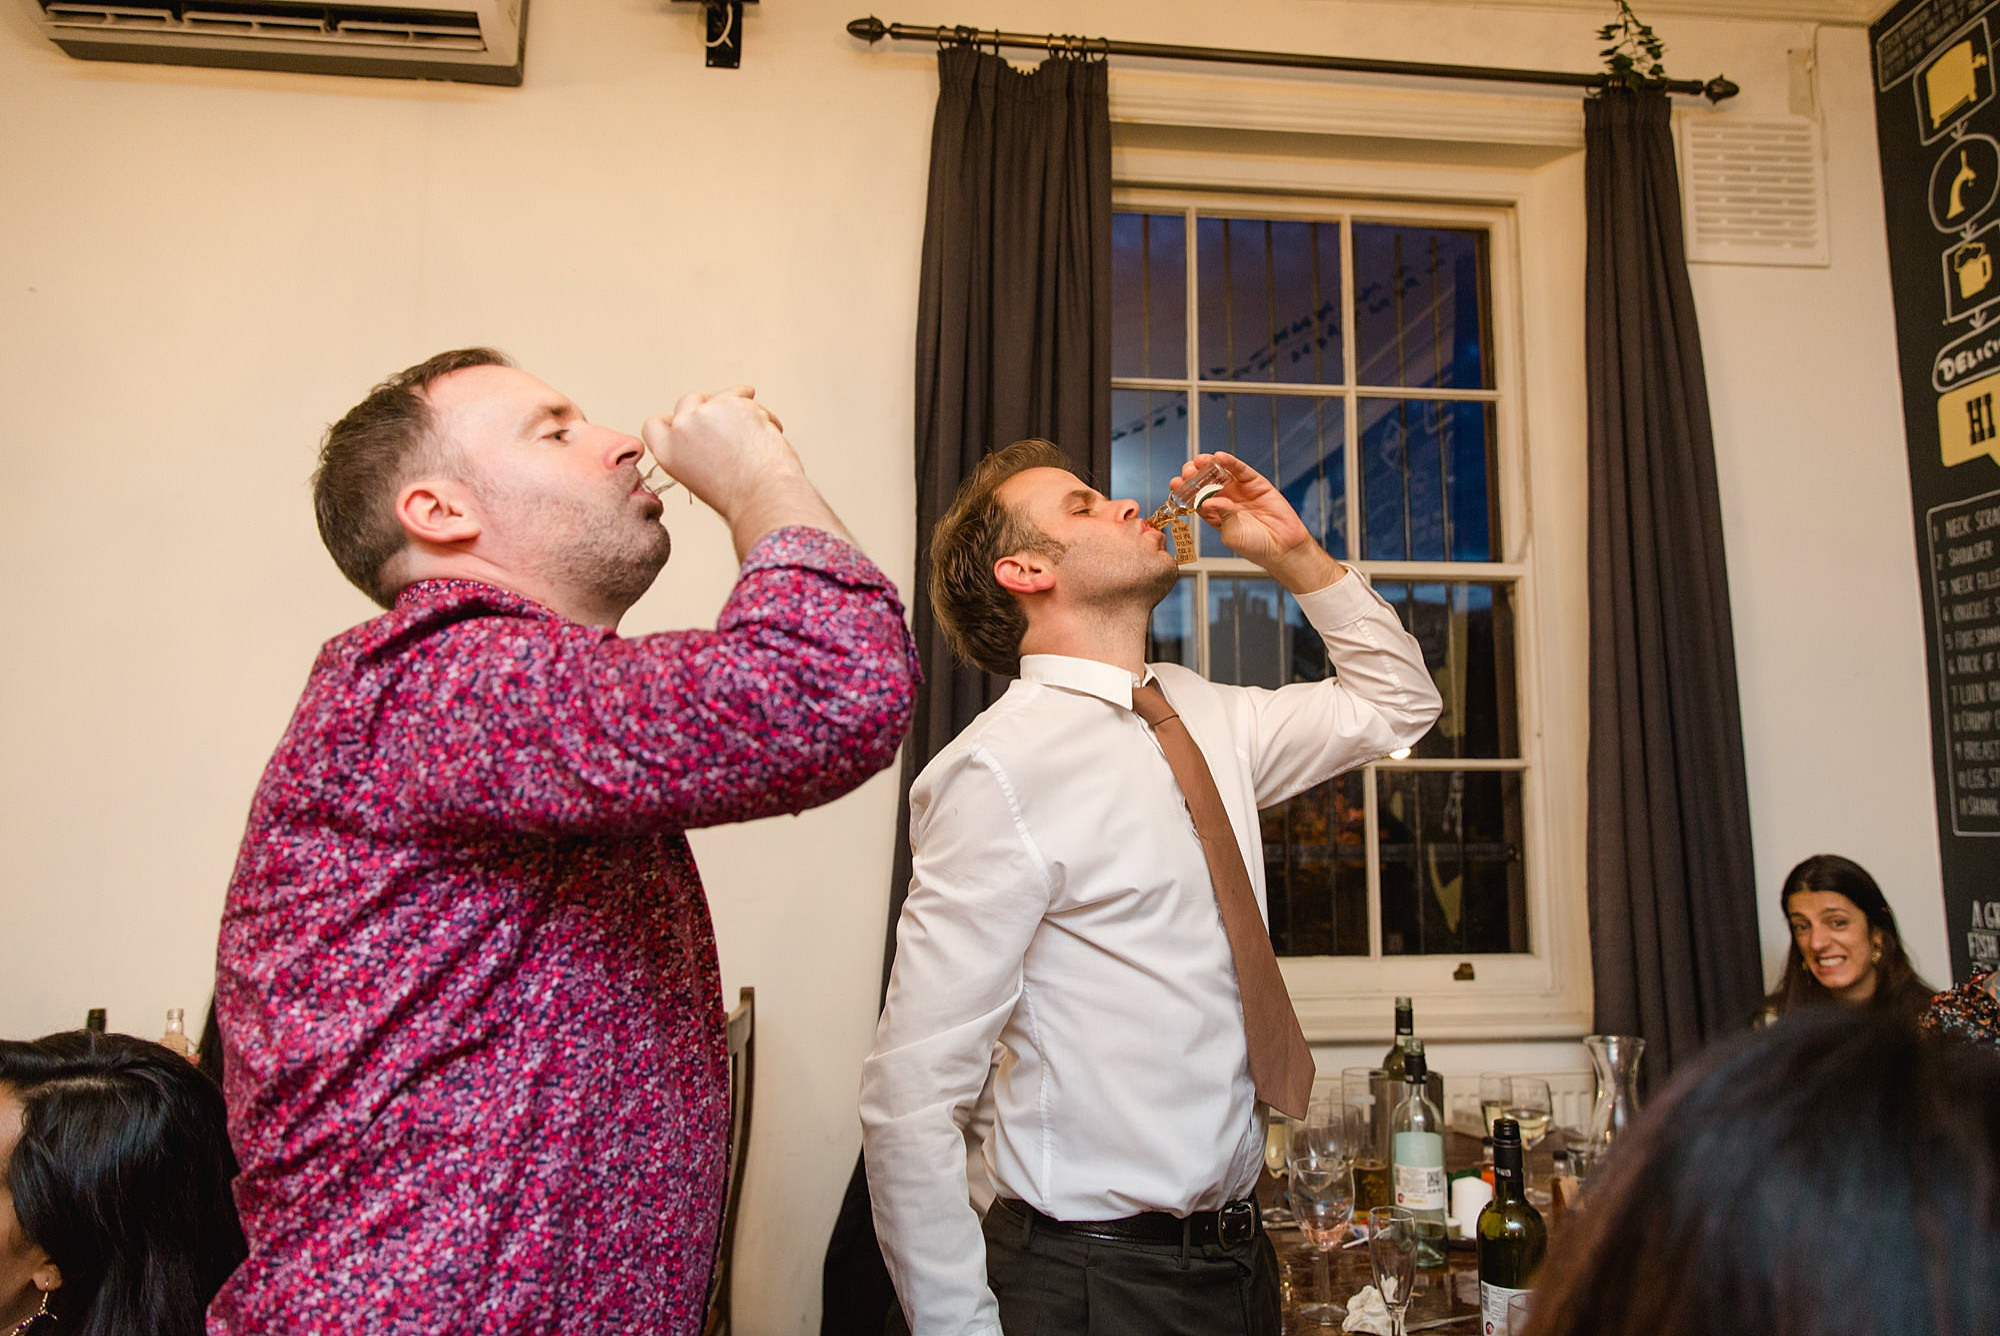 Prince albert camden wedding guests do a shot